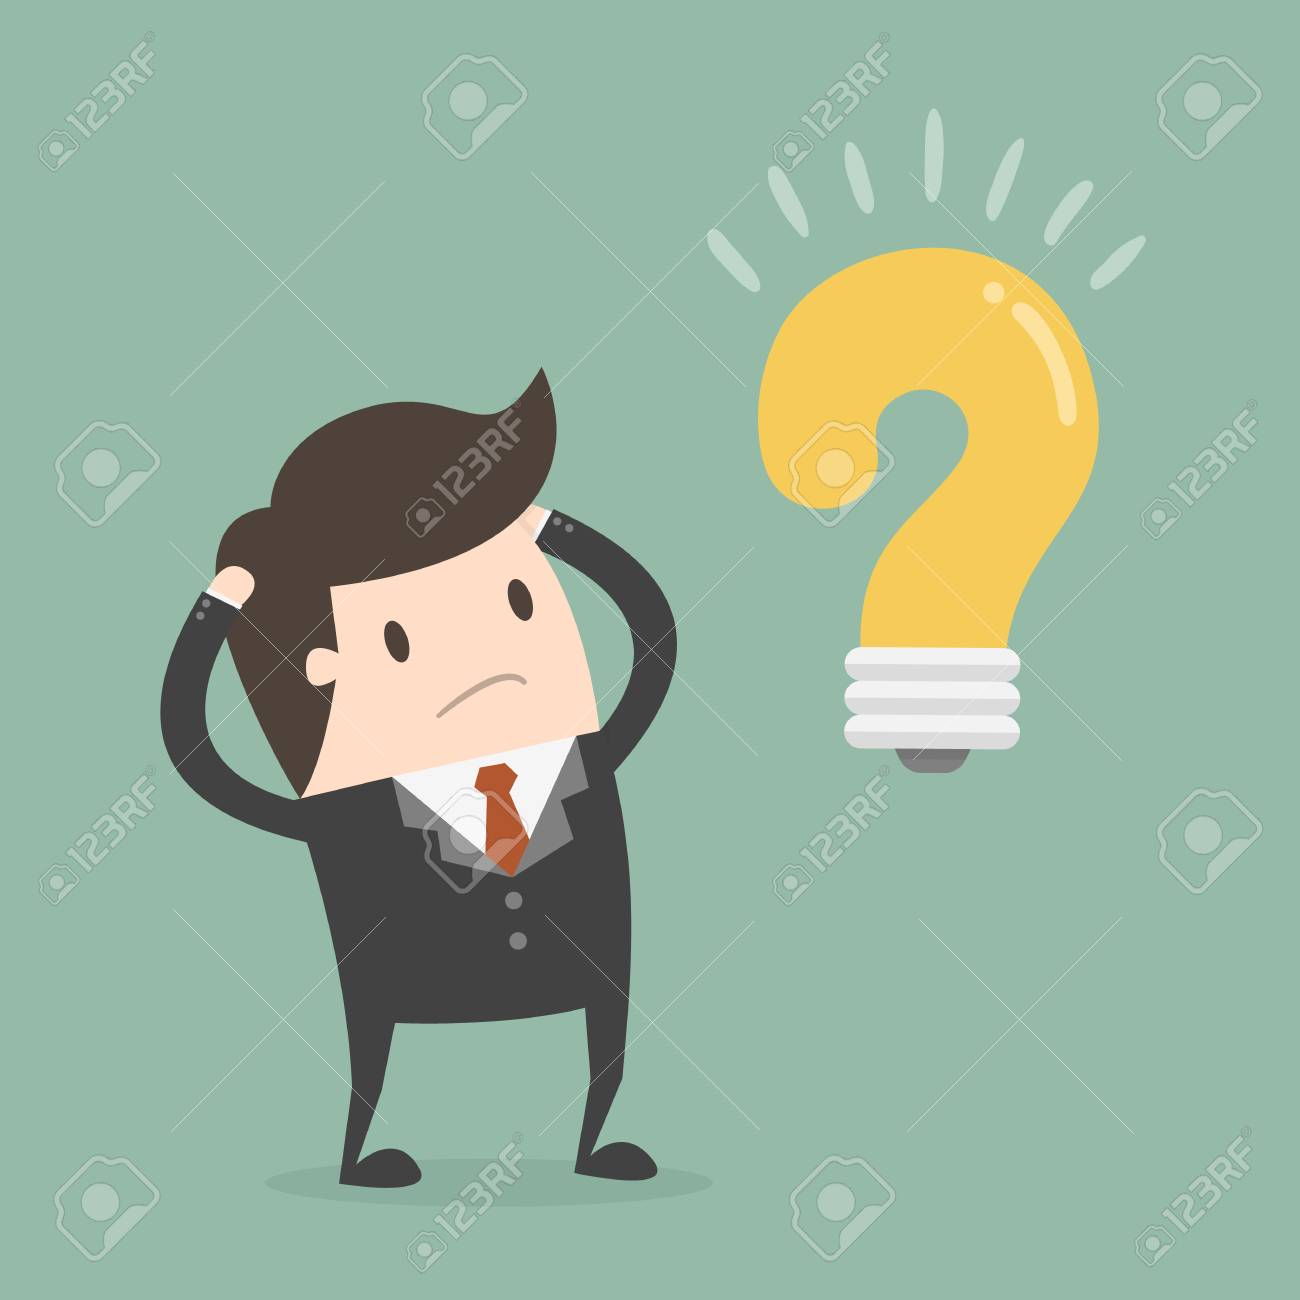 Businessman thinking of a solution to a problem - 96747615